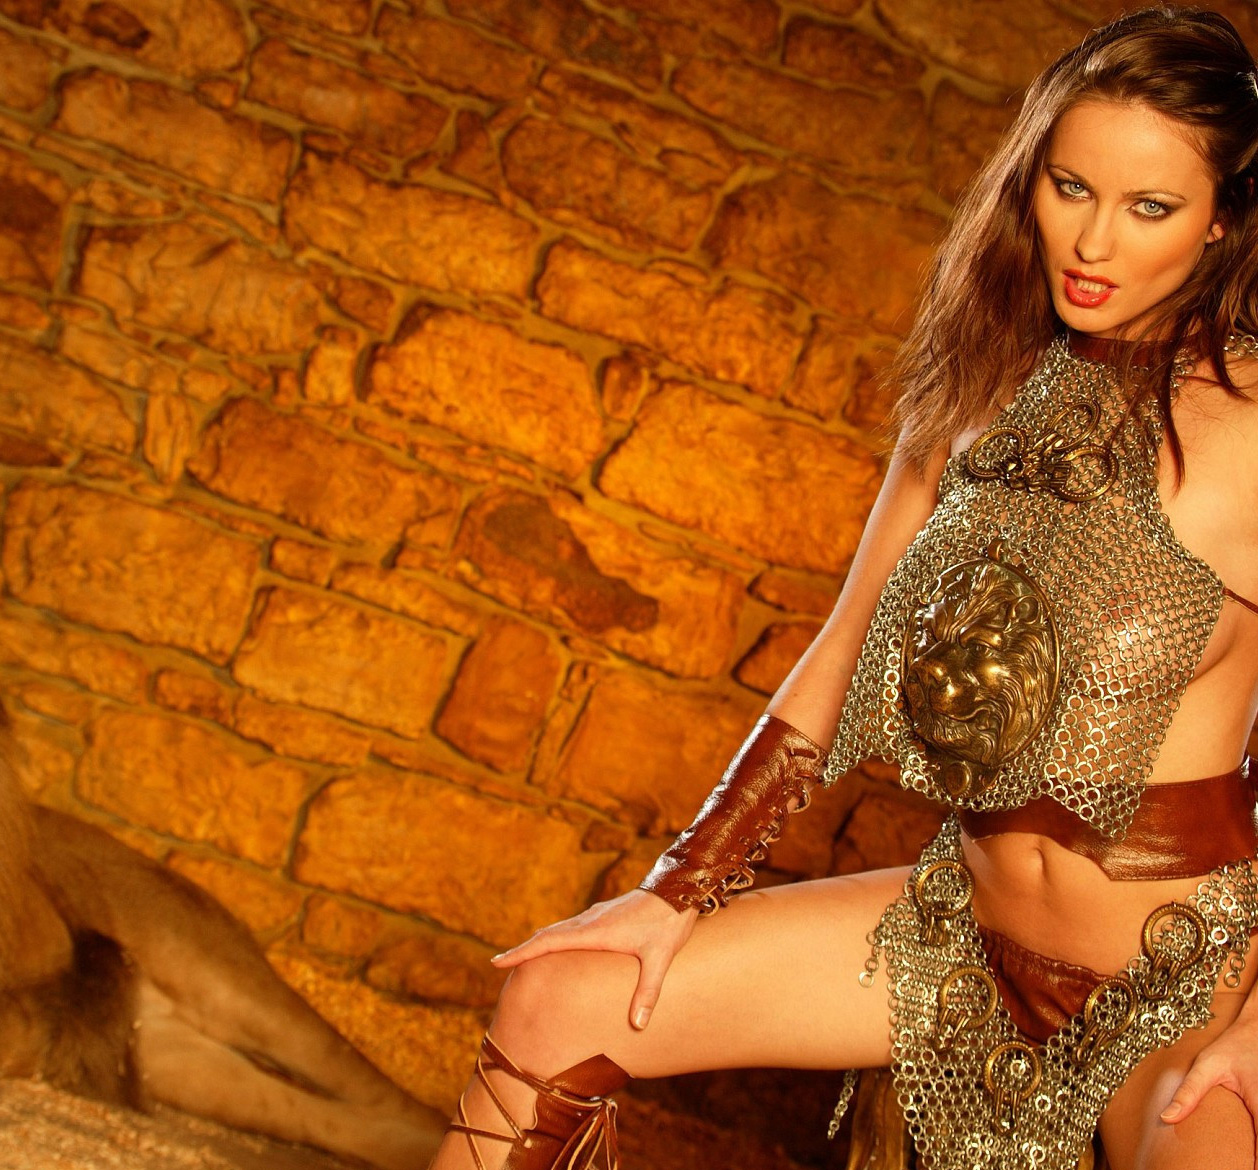 Gladiator - the program of erotic massage